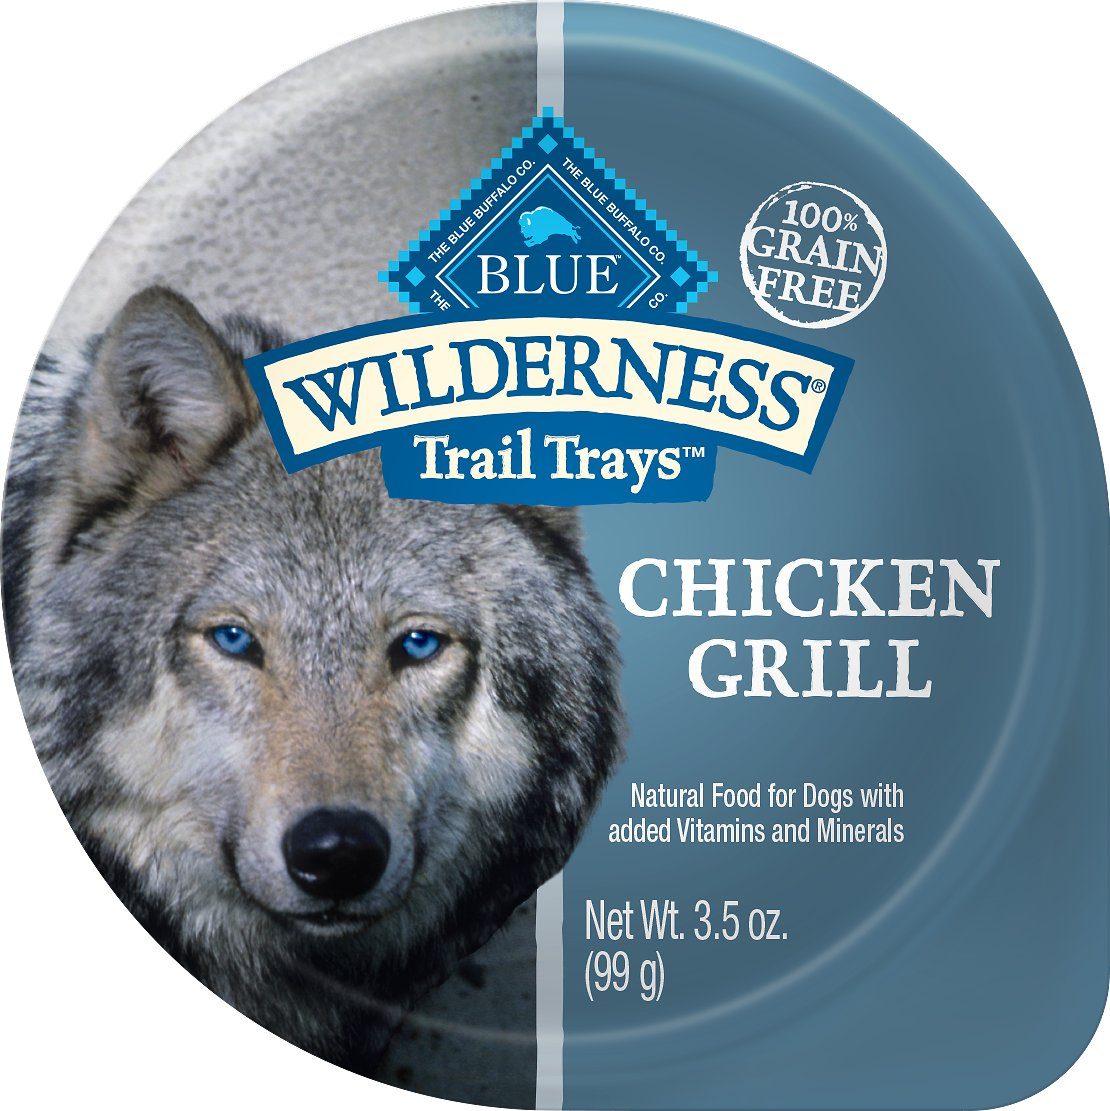 Blue Buffalo Wilderness Trail Trays Chicken Grill Formula Grain-Free Dog Food Trays, 3.5-oz, case of 12